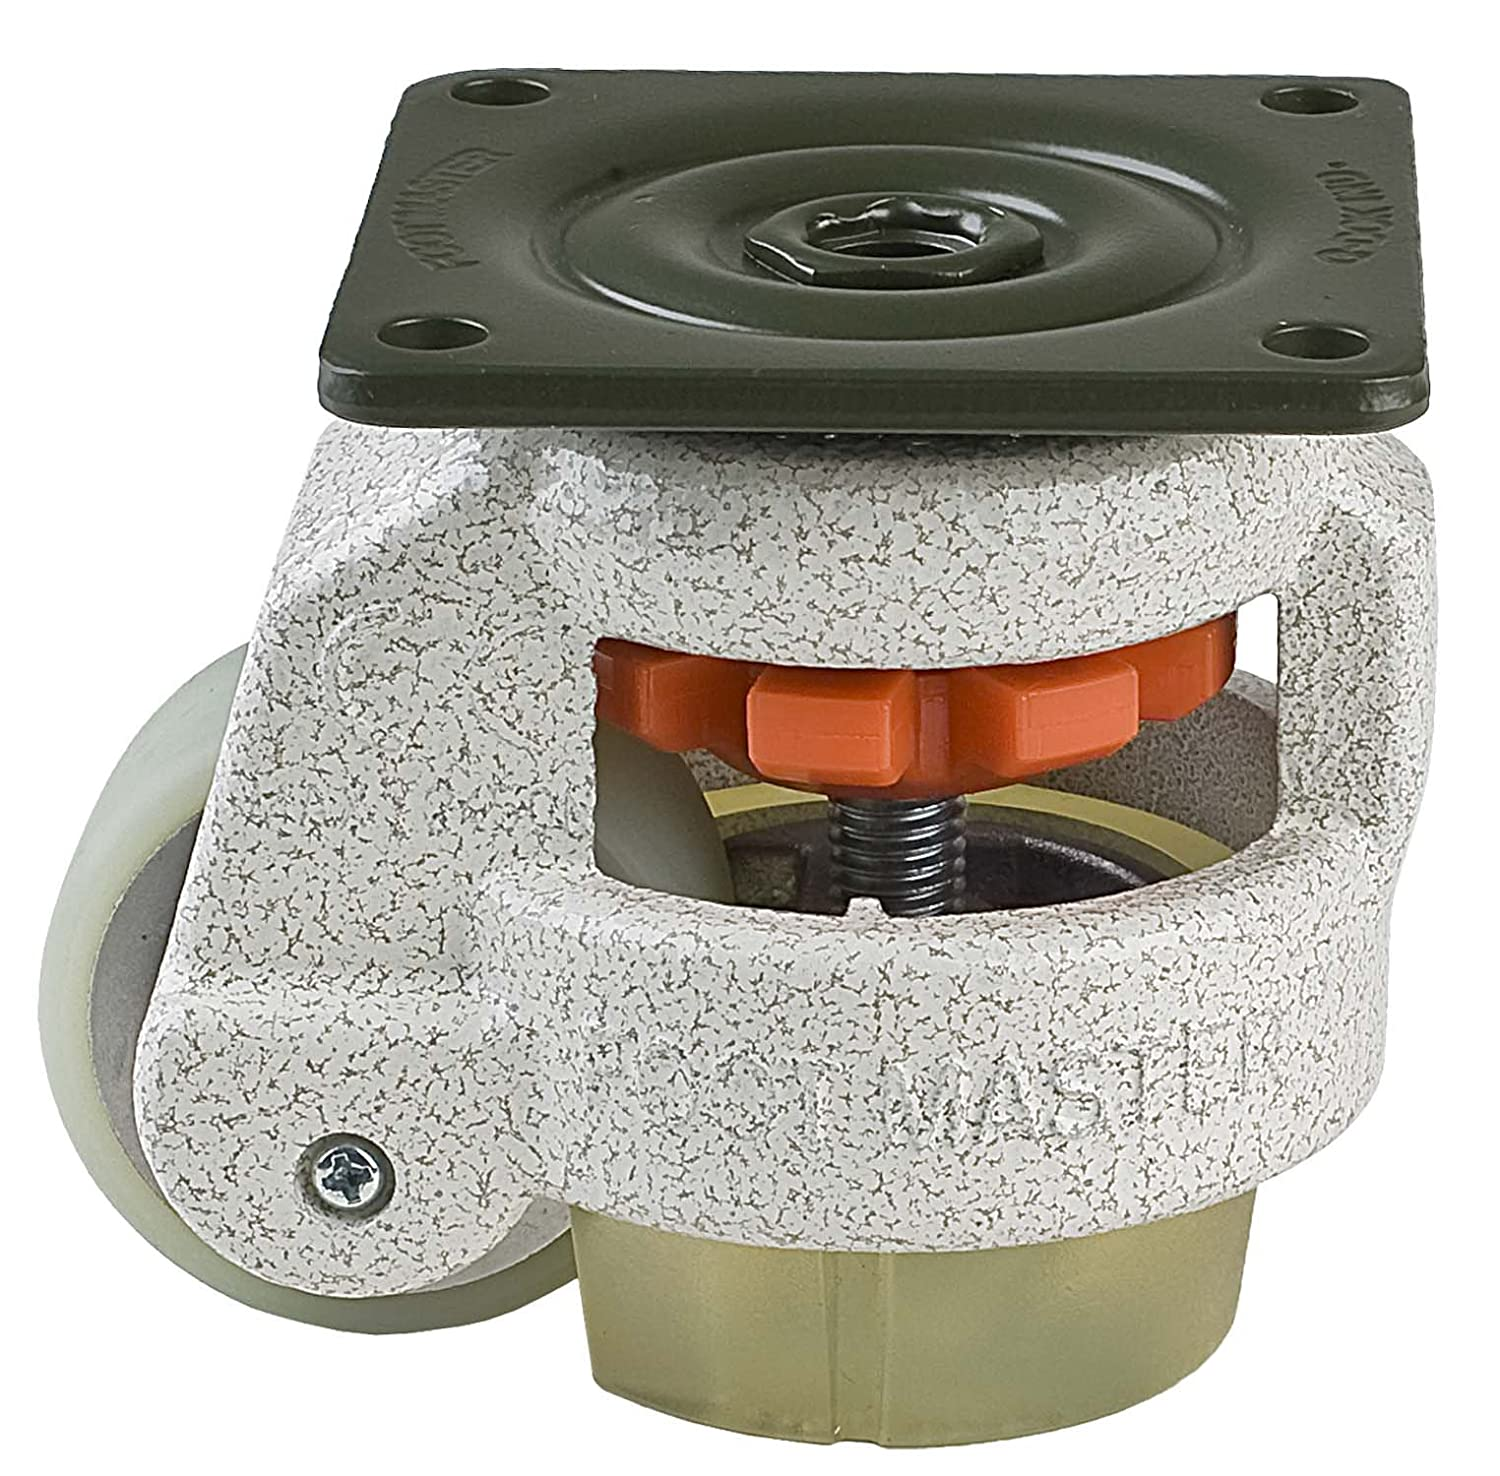 FOOTMASTER GD-60F-U Urethane Wheel and Pad Leveling Caster, 550 lbs, Top Plate 2 7/8 x 2 7/8, Bolt Holes 2 9/32 x 2 9/32, Ivory Finish by FOOTMASTER B00I2JG38Y